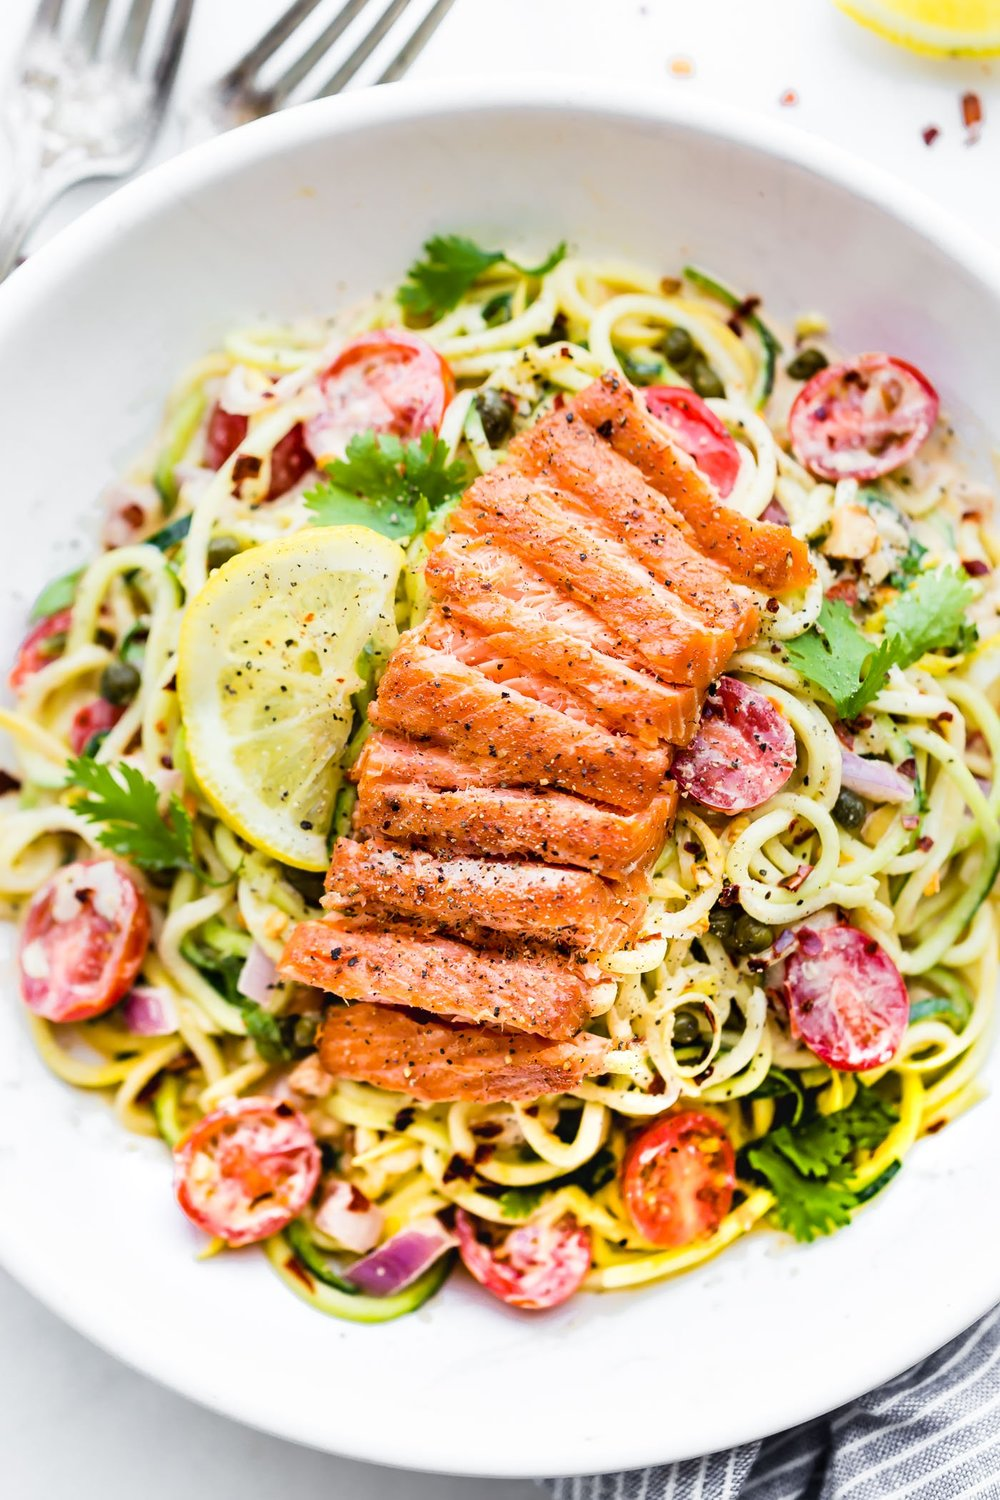 Cajun Smoked Zucchini Noodle Salad from Cotter Crunch